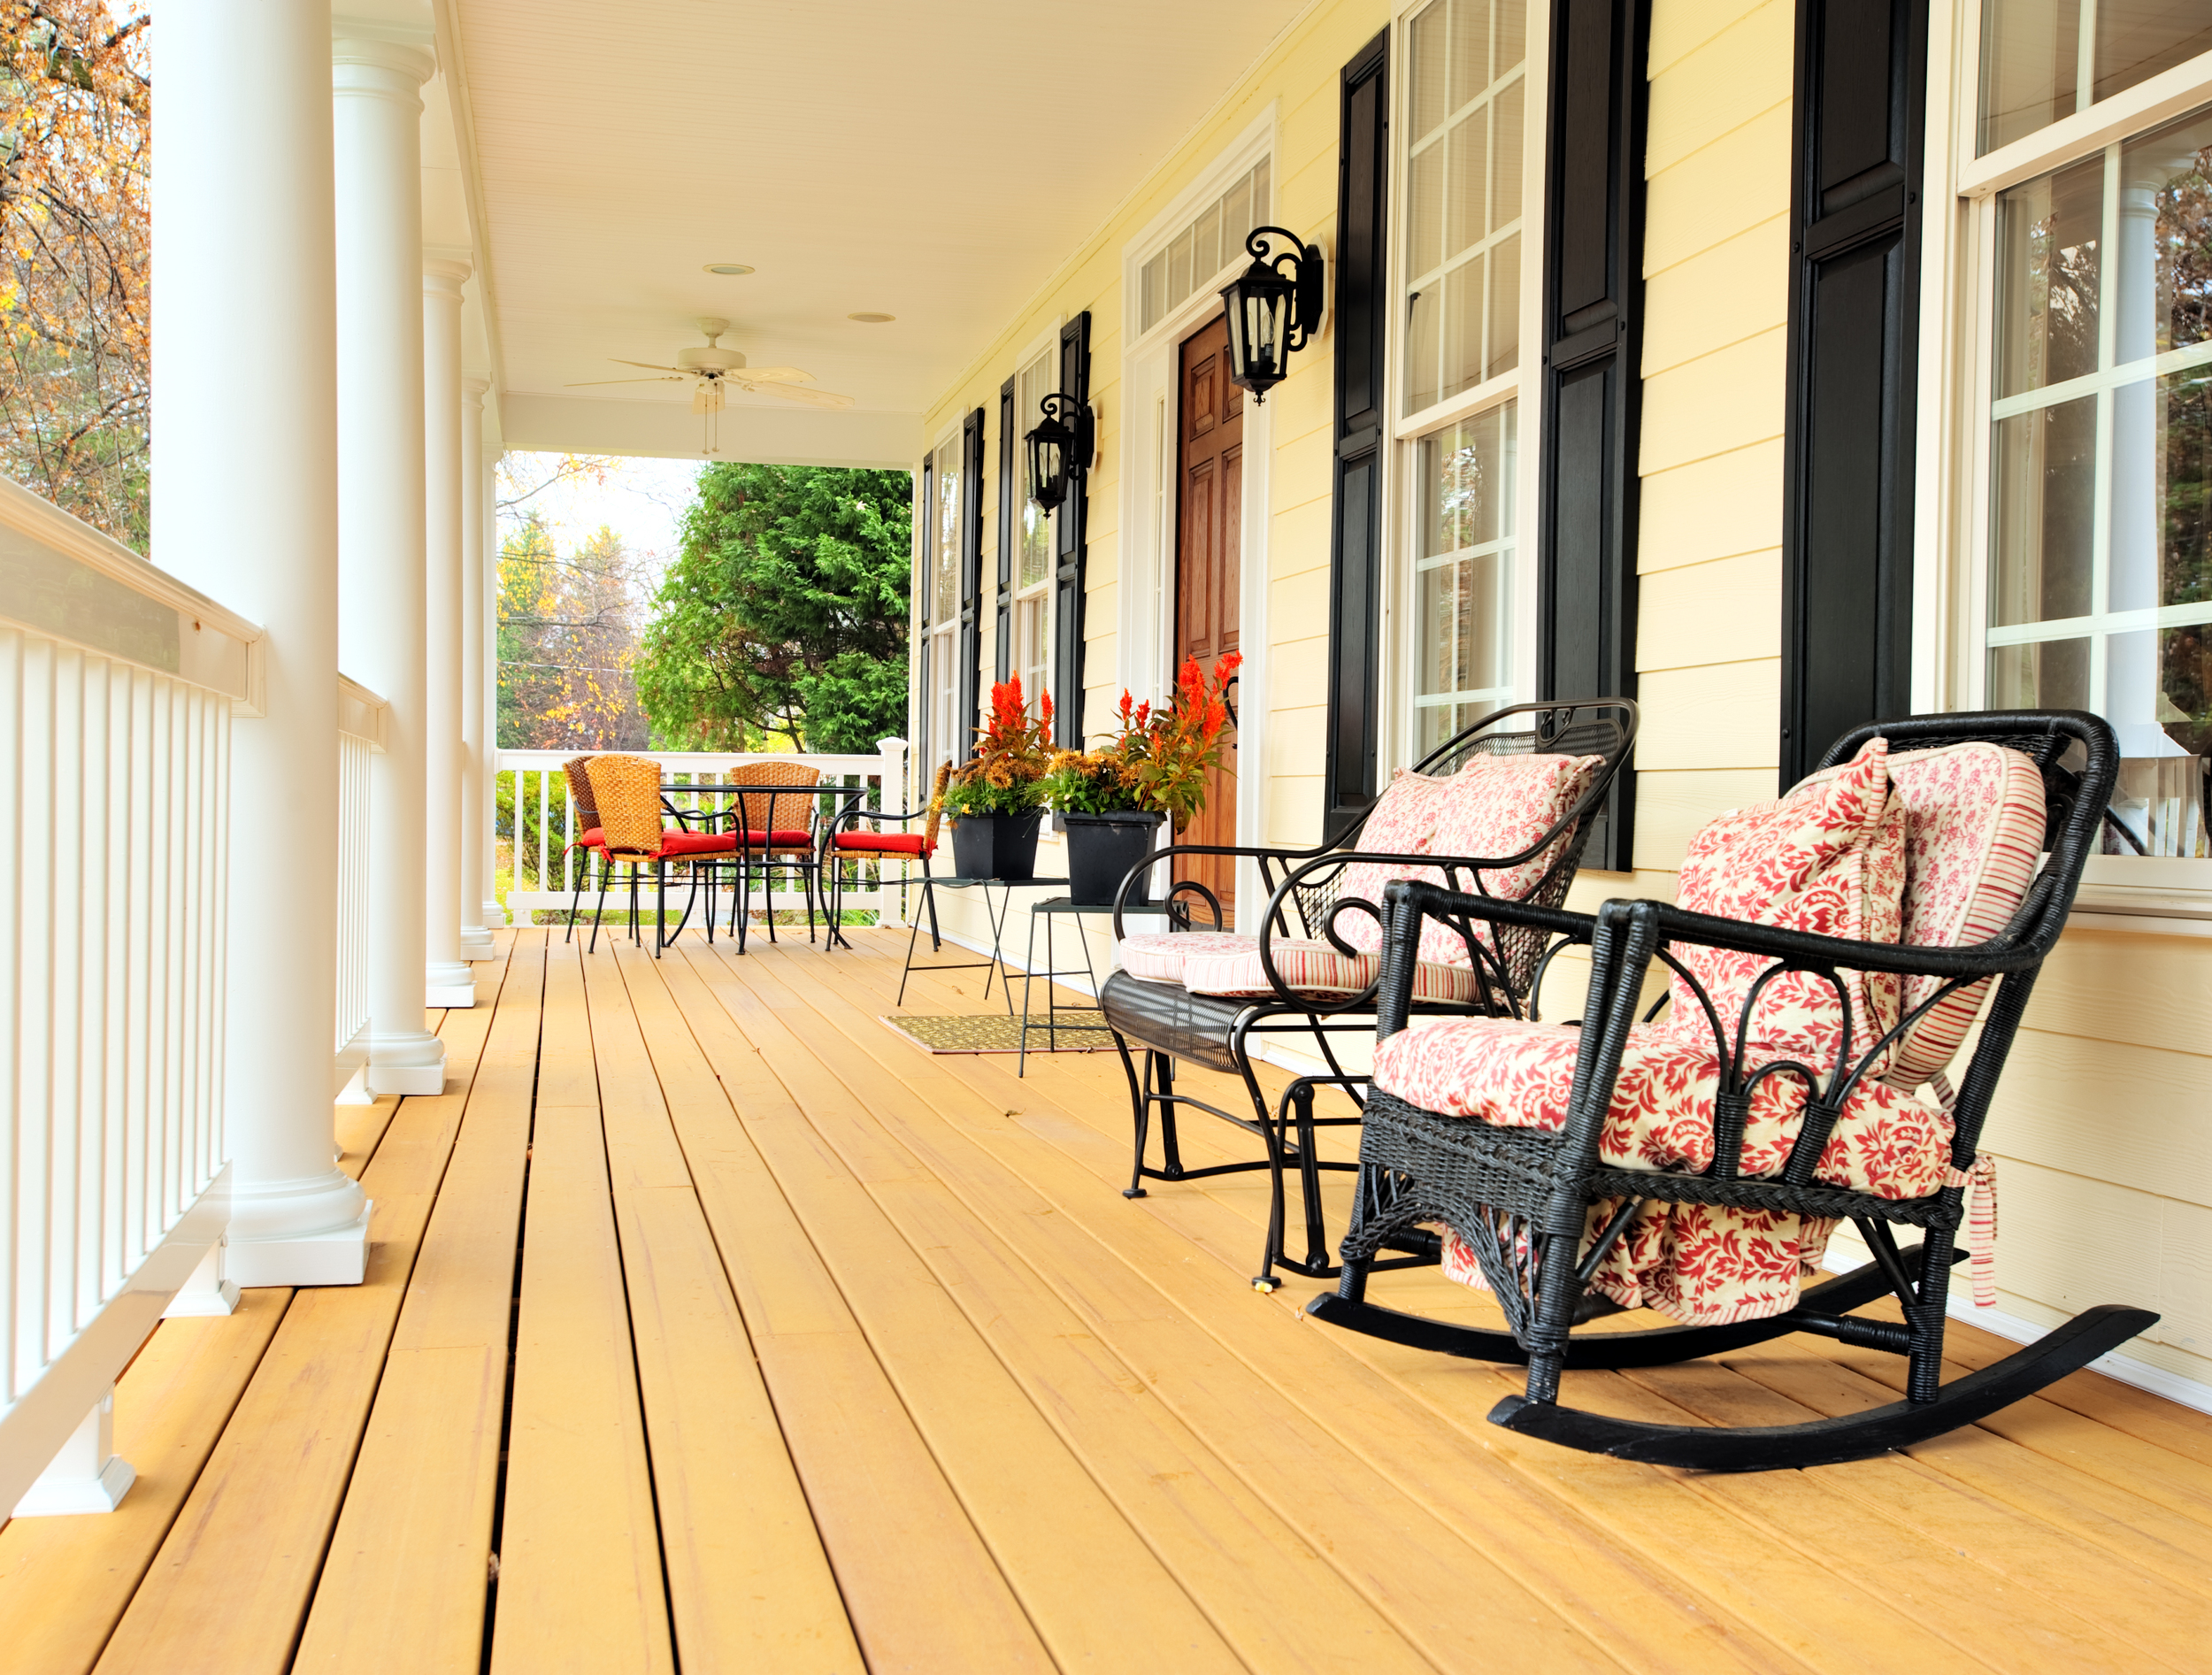 Long front porch with light wood, white paint, black furniture, red flowers